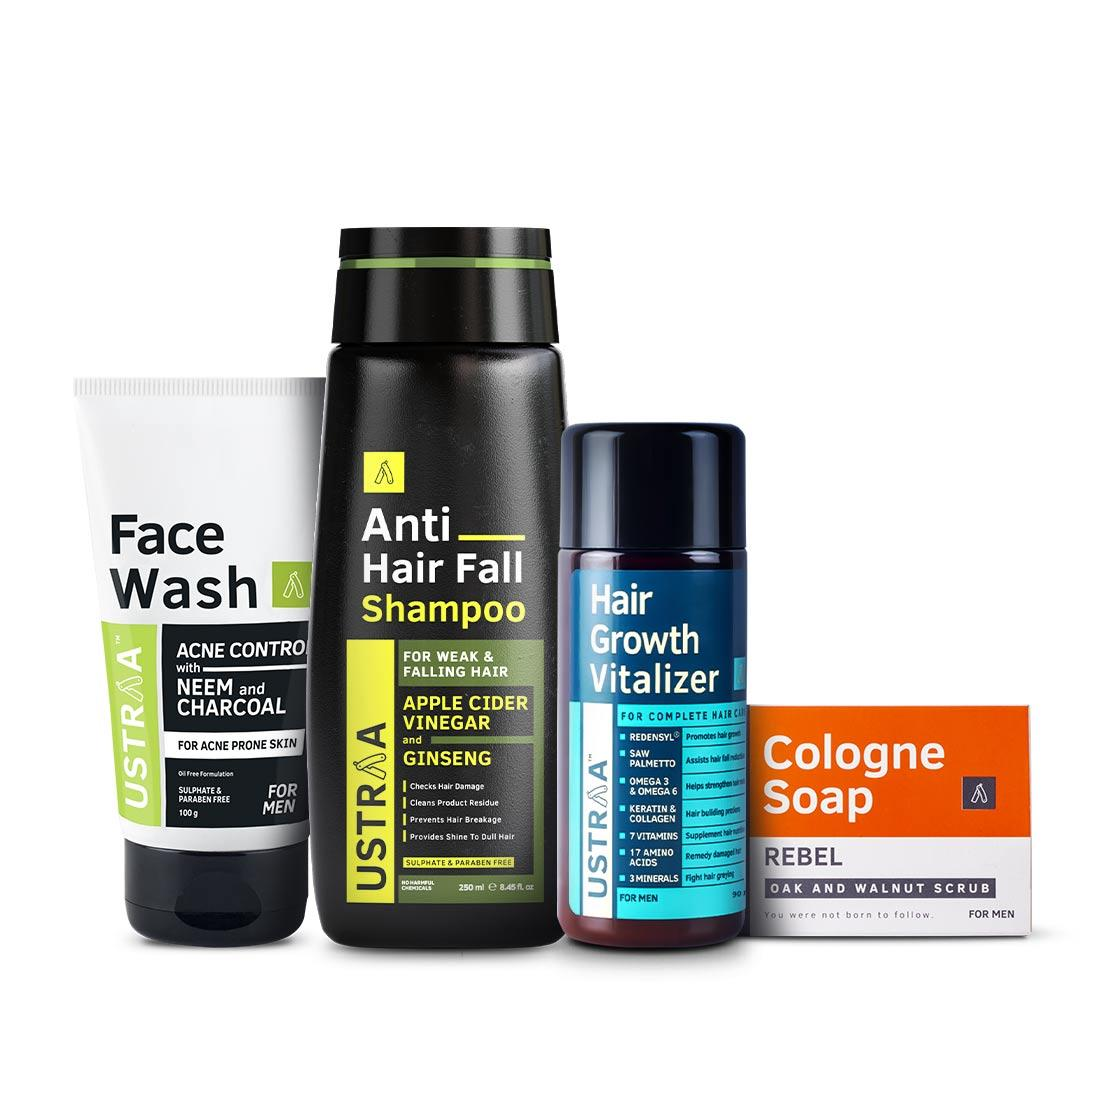 Ustraa Monthly Essential Kit For Men | Hair Growth Vitalizer, Acne Control Face Wash, Anti Hair-Fall Shampoo & Cologne Soap- Rebel